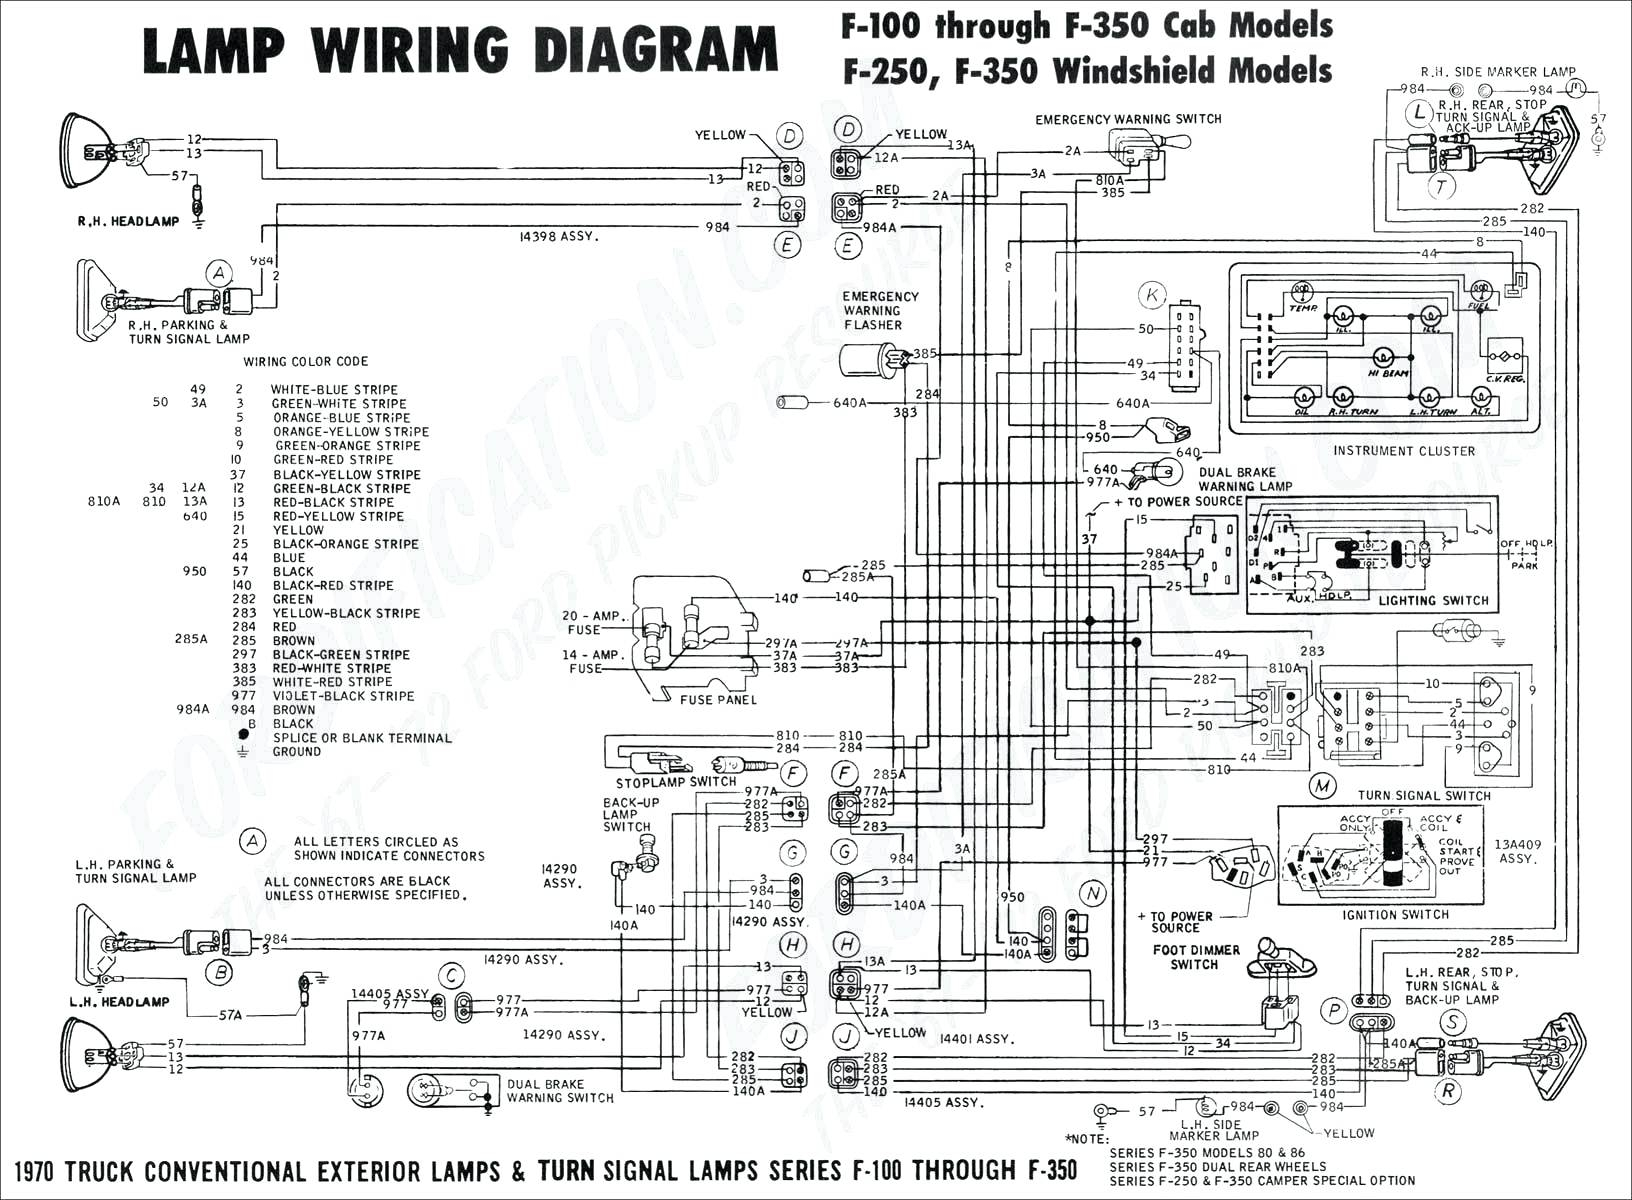 Peterbilt 579 Wiring Diagram from wholefoodsonabudget.com